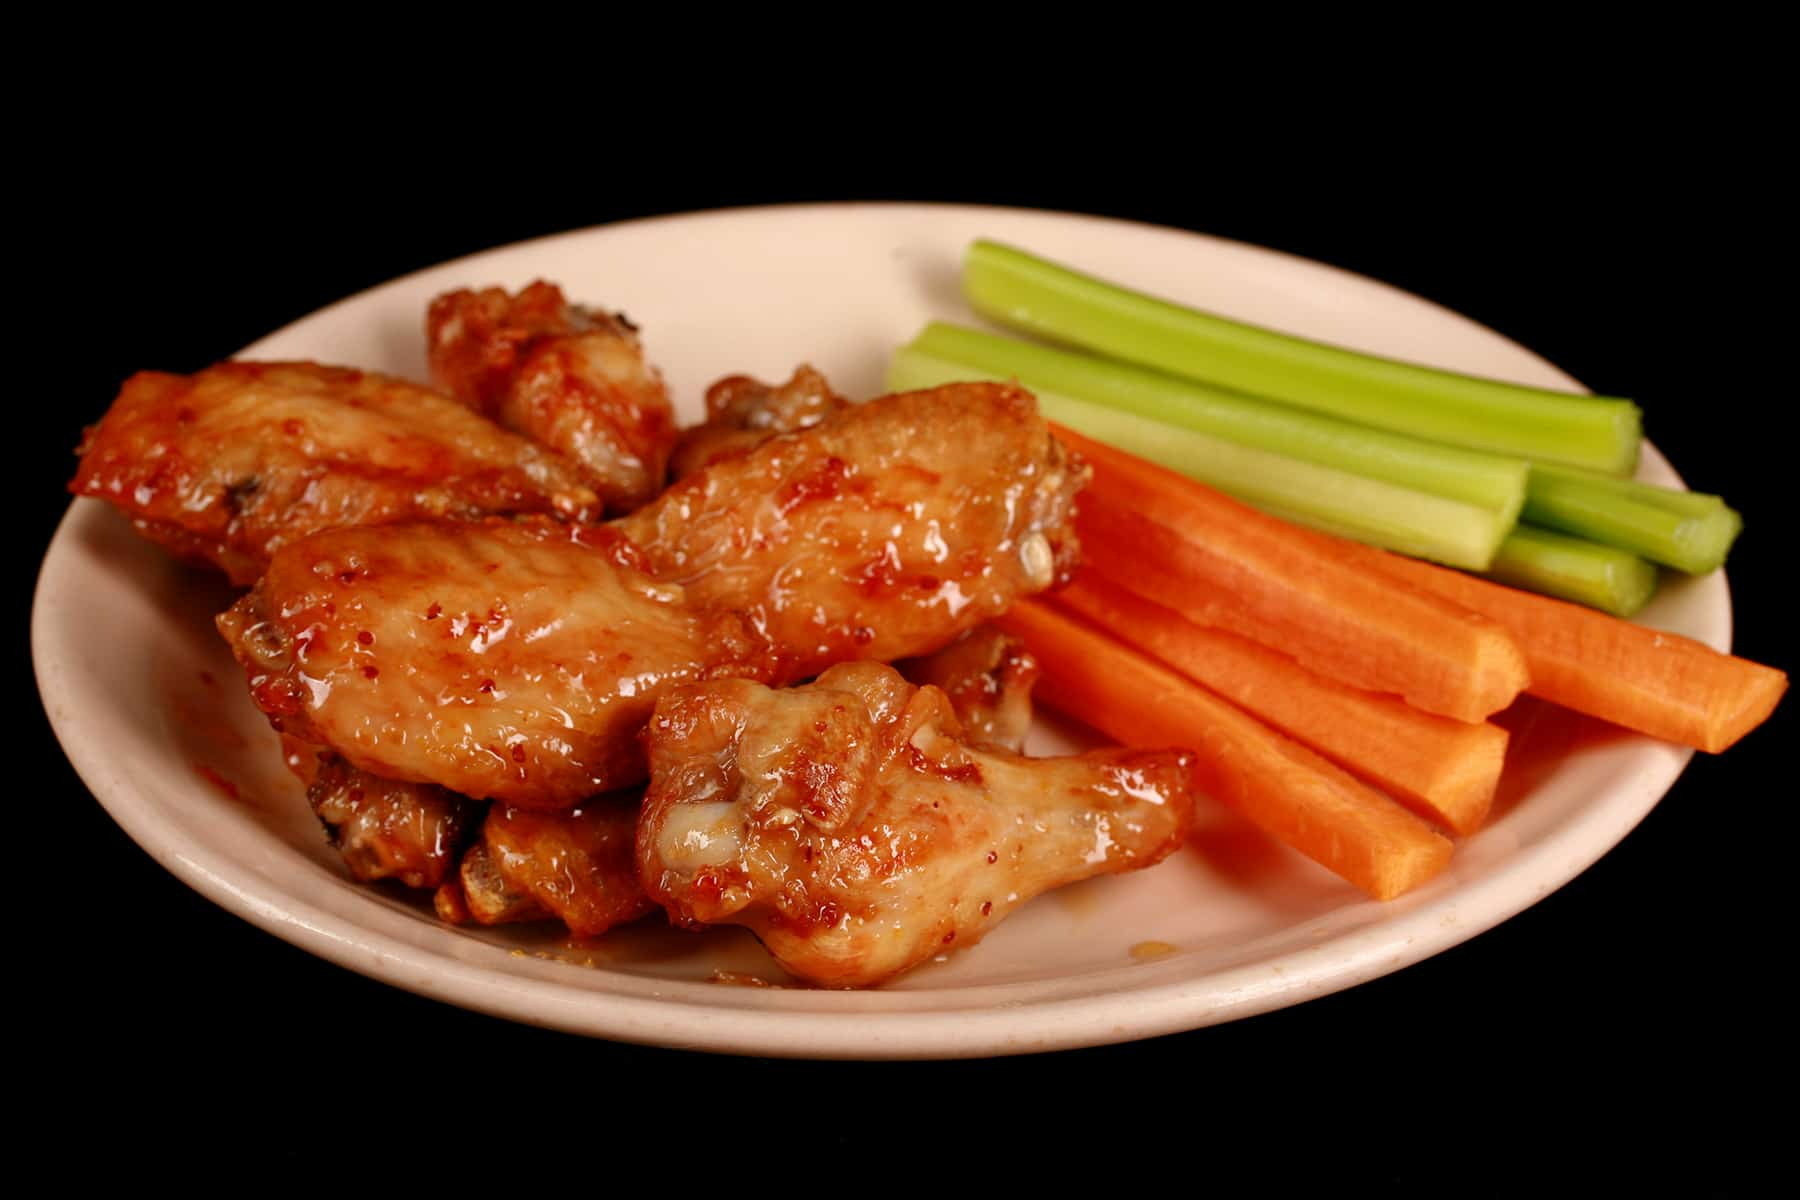 A small plate of maple dijon glazed wings, with carrot and celery sticks on the side.